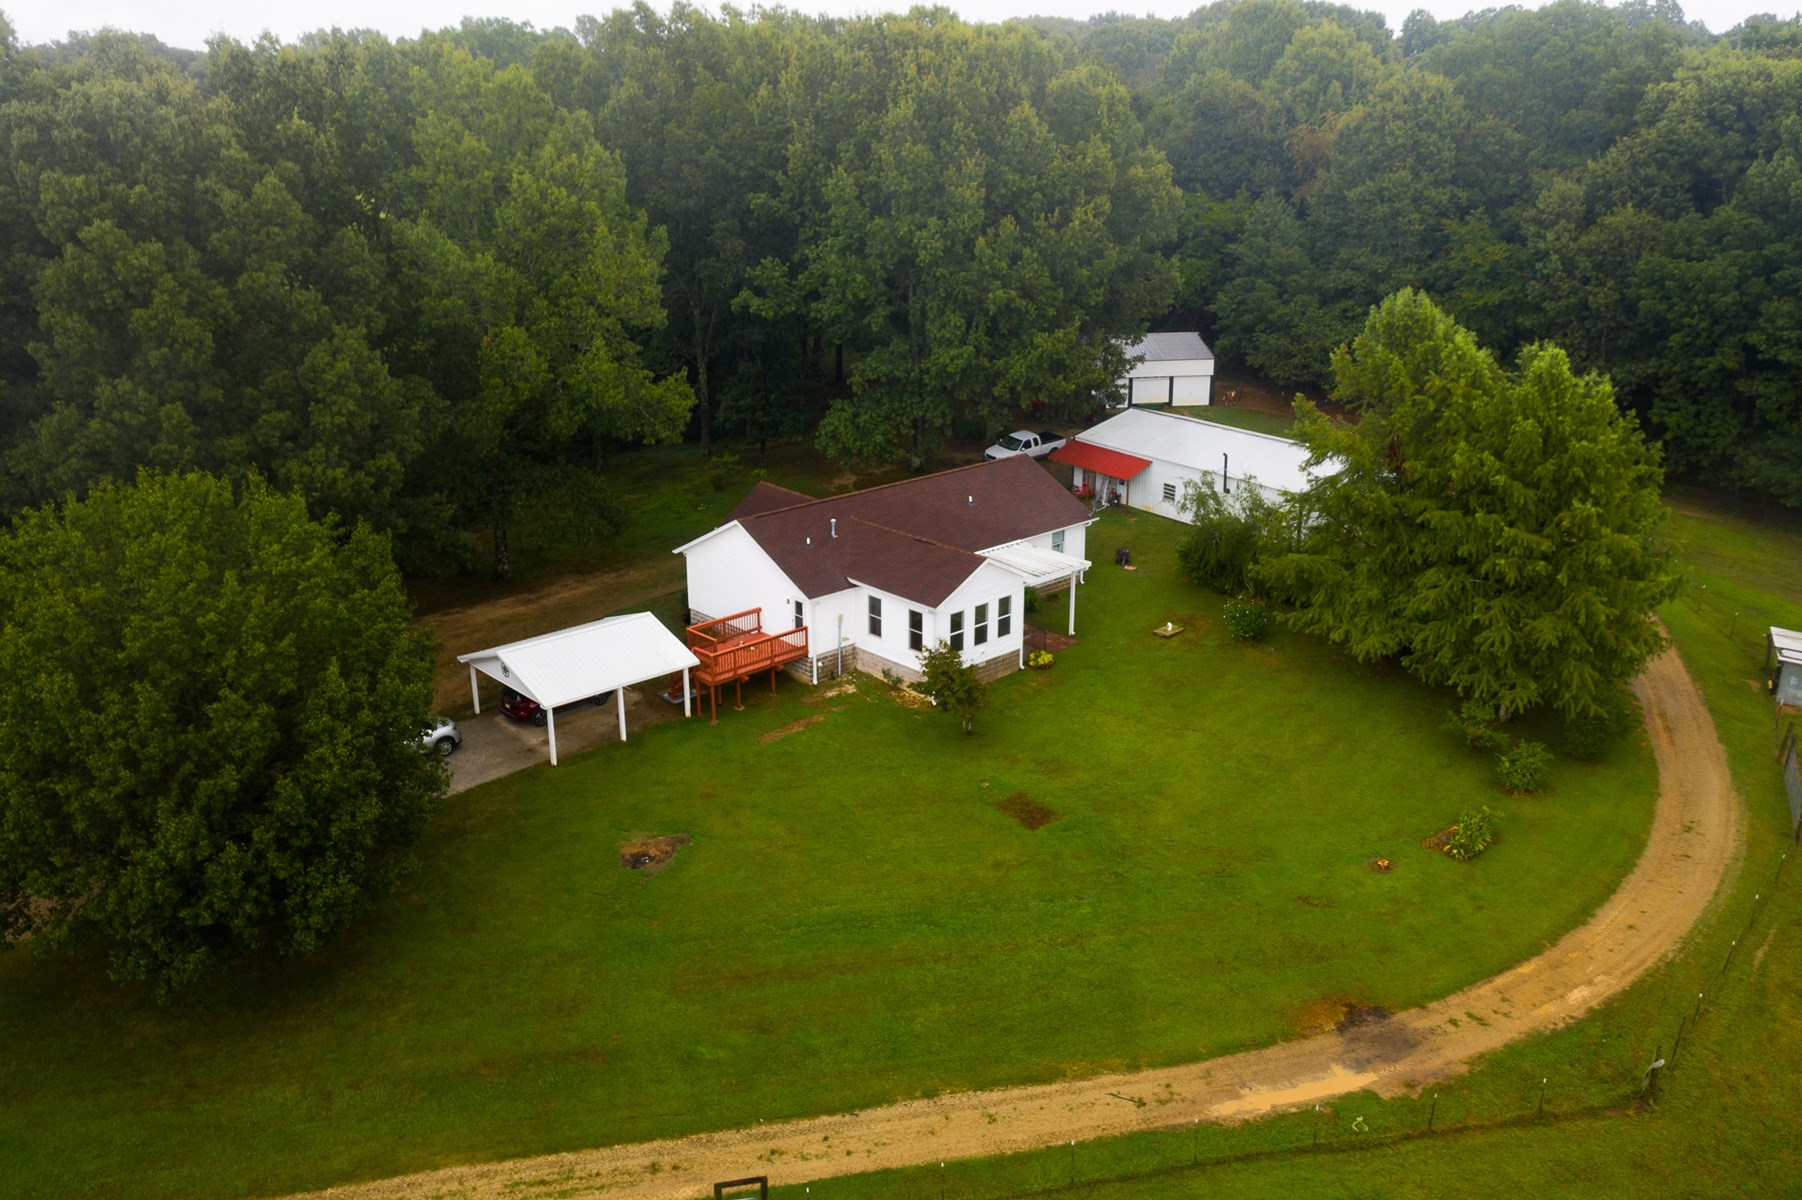 3 BR 2 BA Country Home on 33 Acres in Trenton Tn